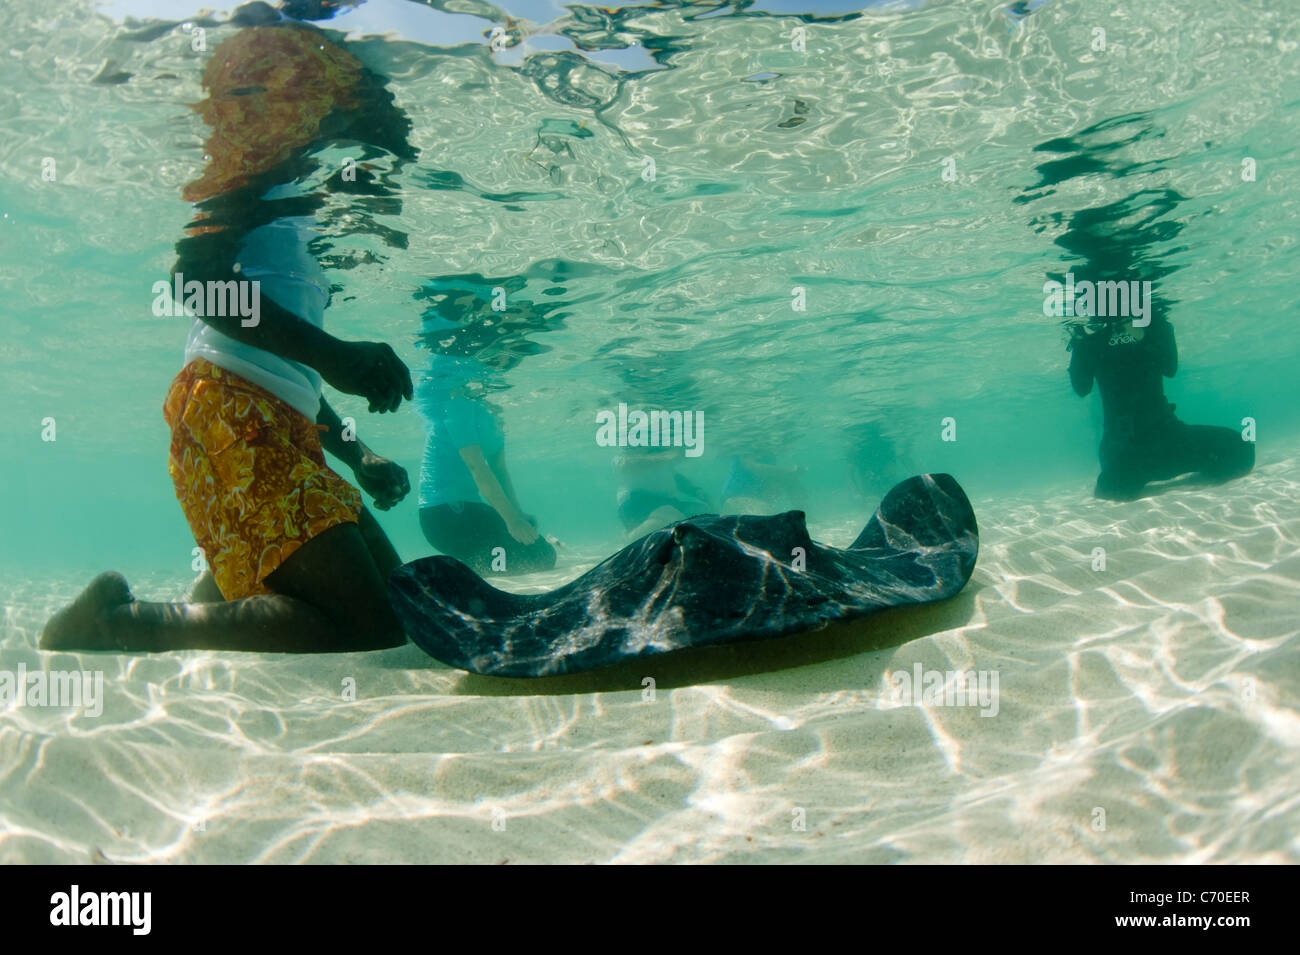 Friendly stingrays Bimini Bahamas swimming with tourists in a shallow lagoon underwater photograph - Stock Image